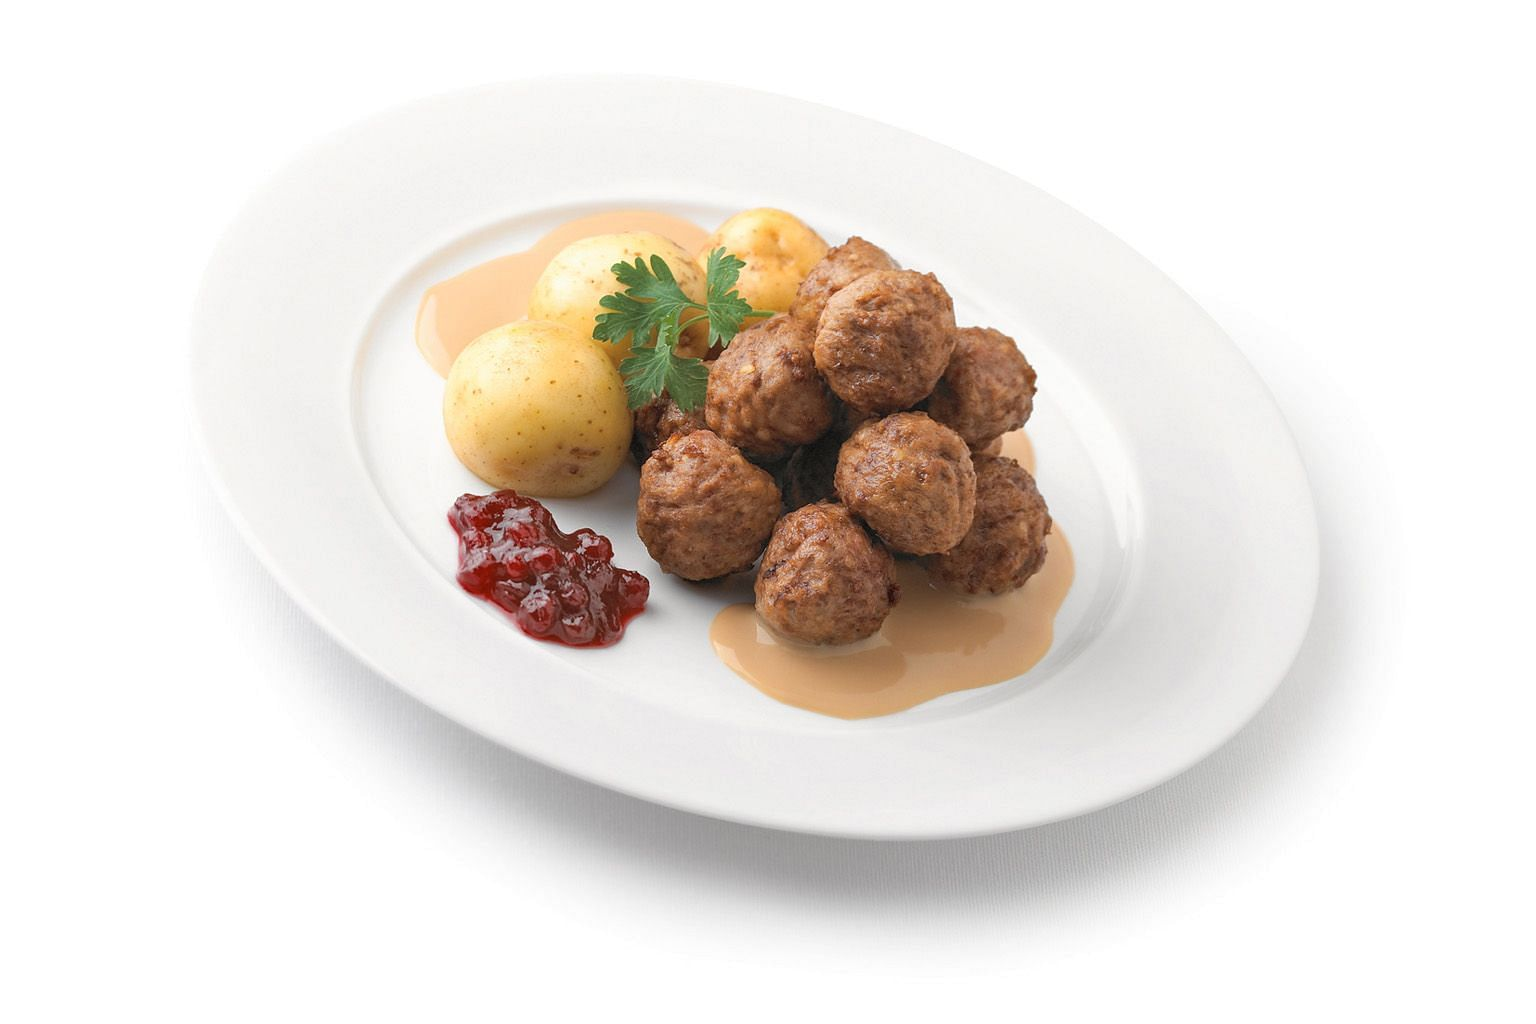 Ikea's signature meatballs are made of ground beef and pork and served in cream sauce.